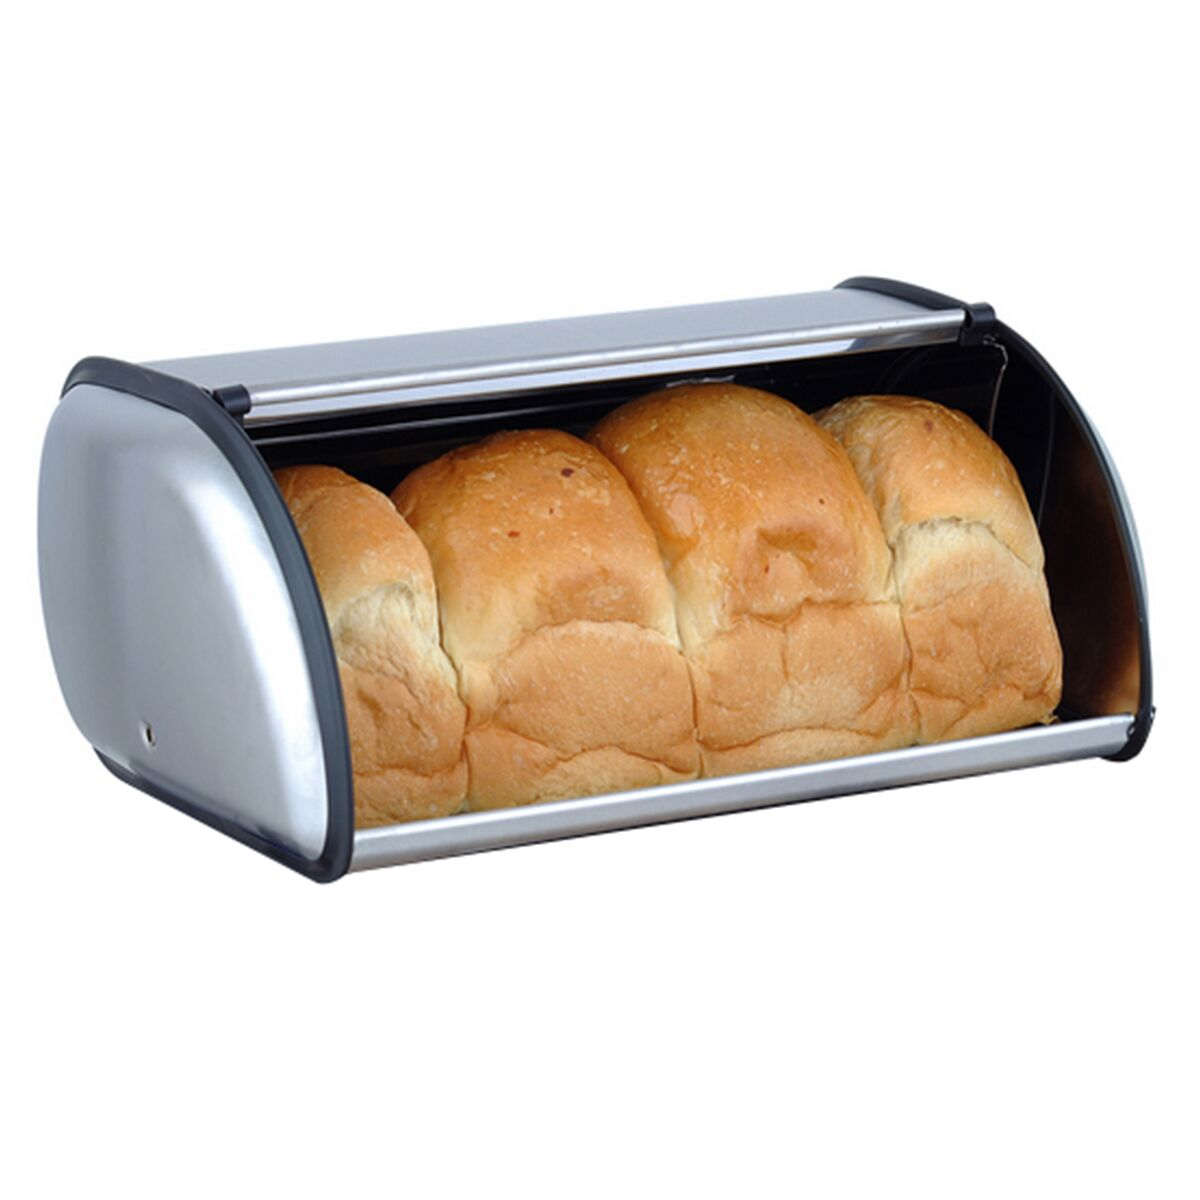 Stainless Steel Roll Top Bread Box Storage Bin Keeper Food Storage Container Pastry Bread Baking Holder Kitchen Supplies Silver